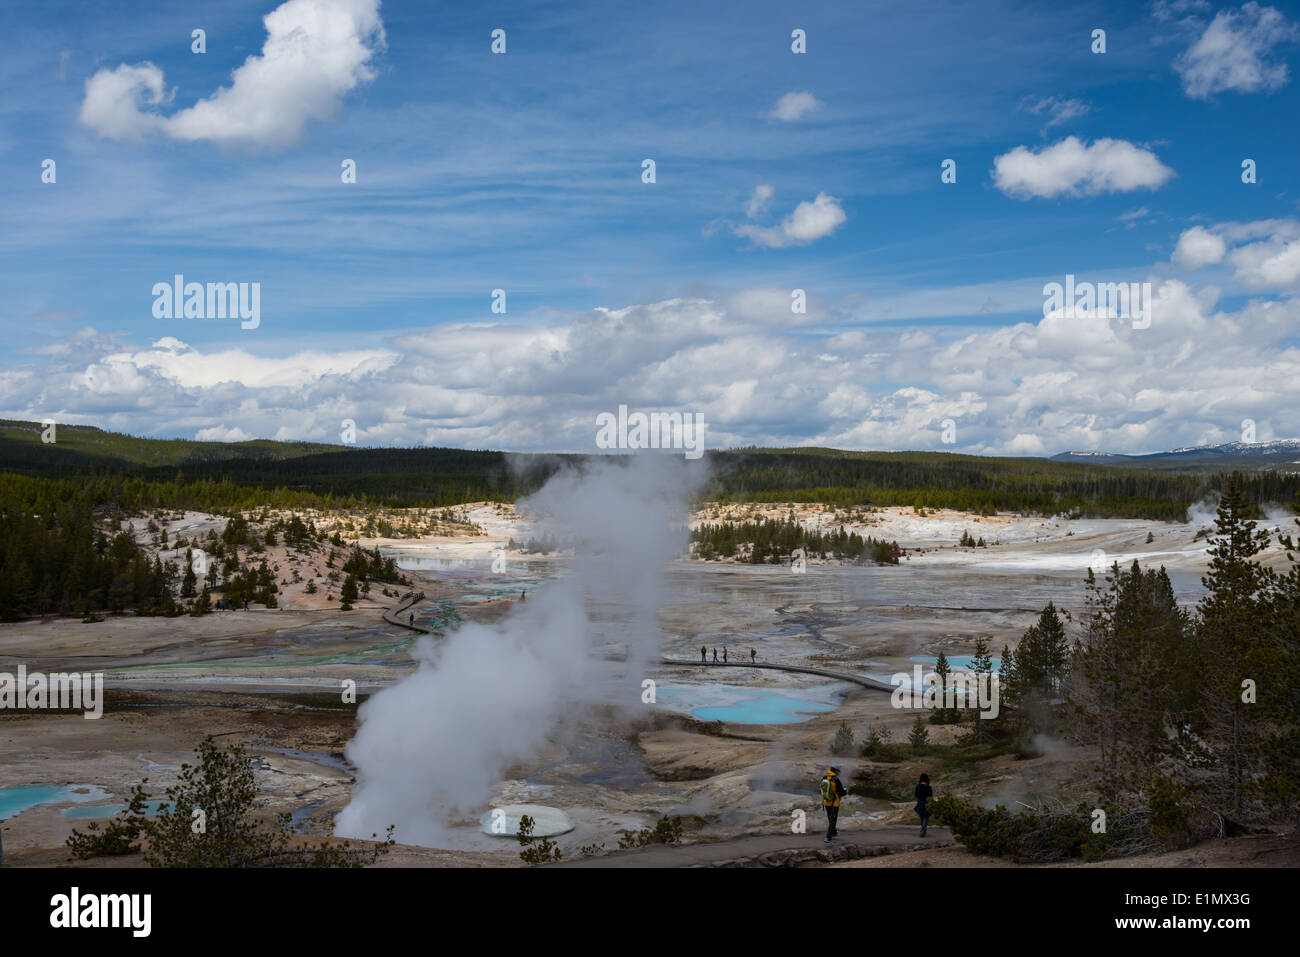 Steam from a fumarole at the Norris Geyser Basin. Yellowstone National Park, Wyoming, USA. - Stock Image